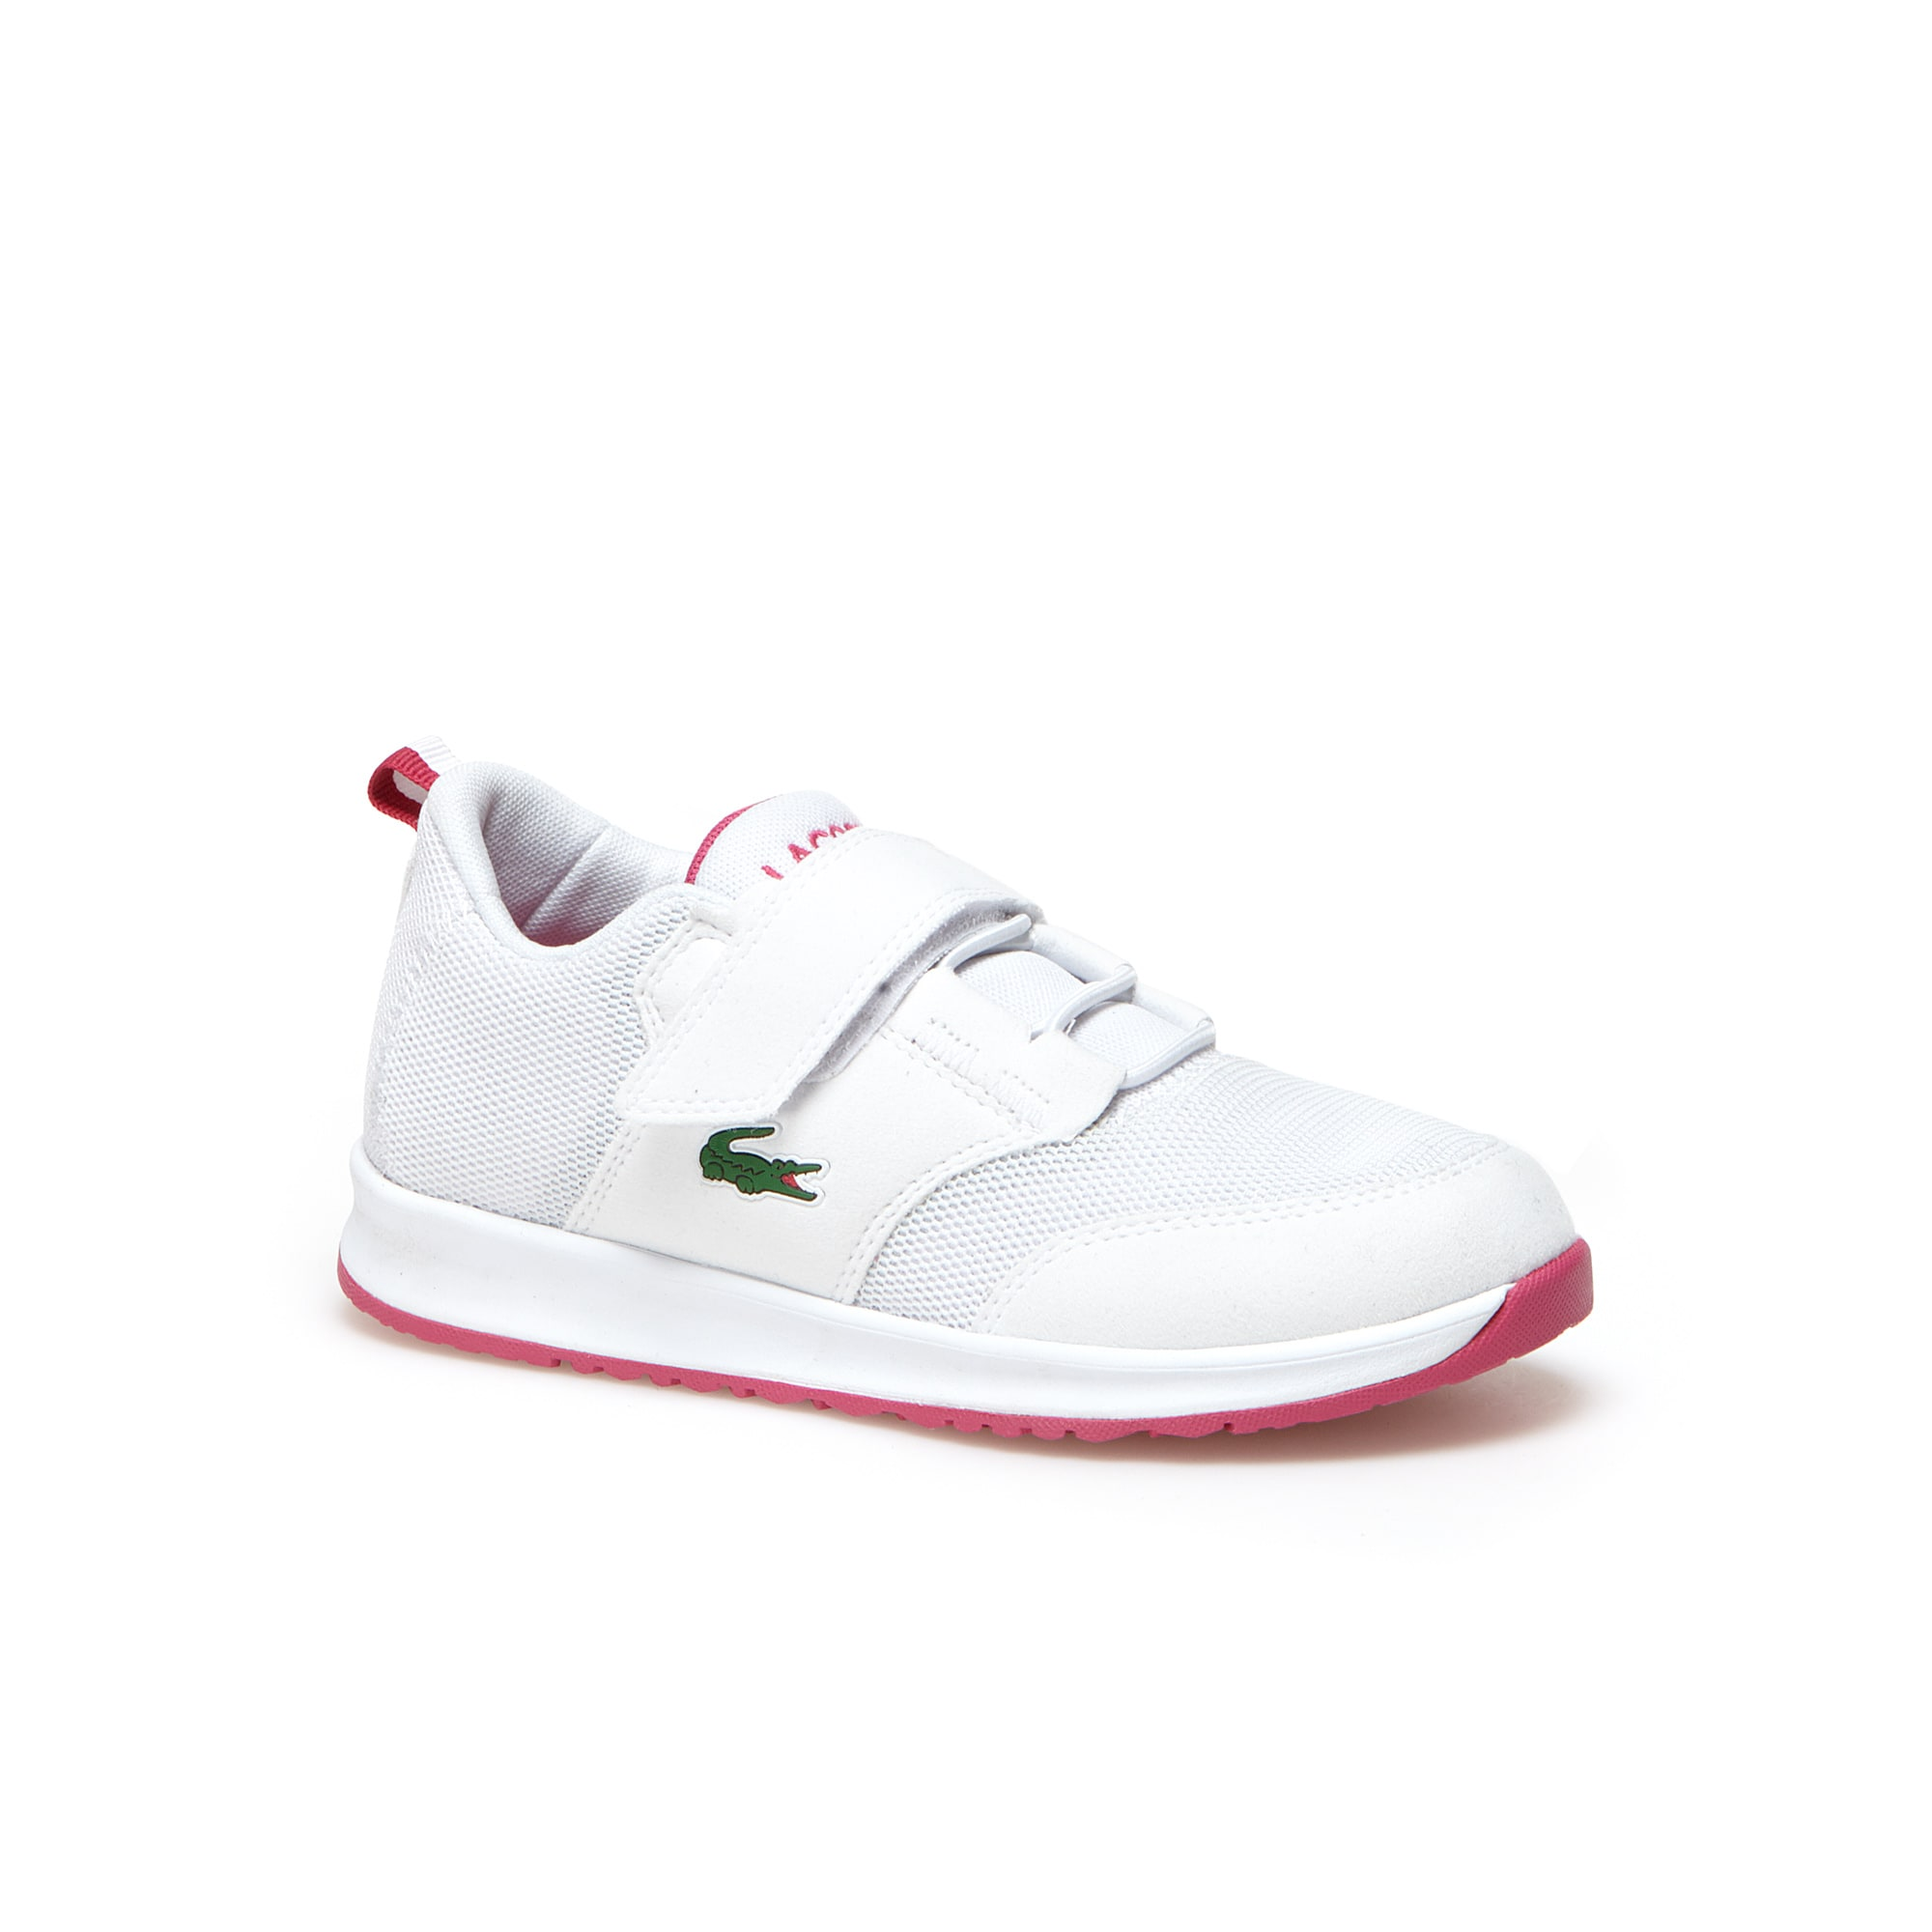 Kids' L.IGHT Breathable Canvas Hook and loop Strap Trainers